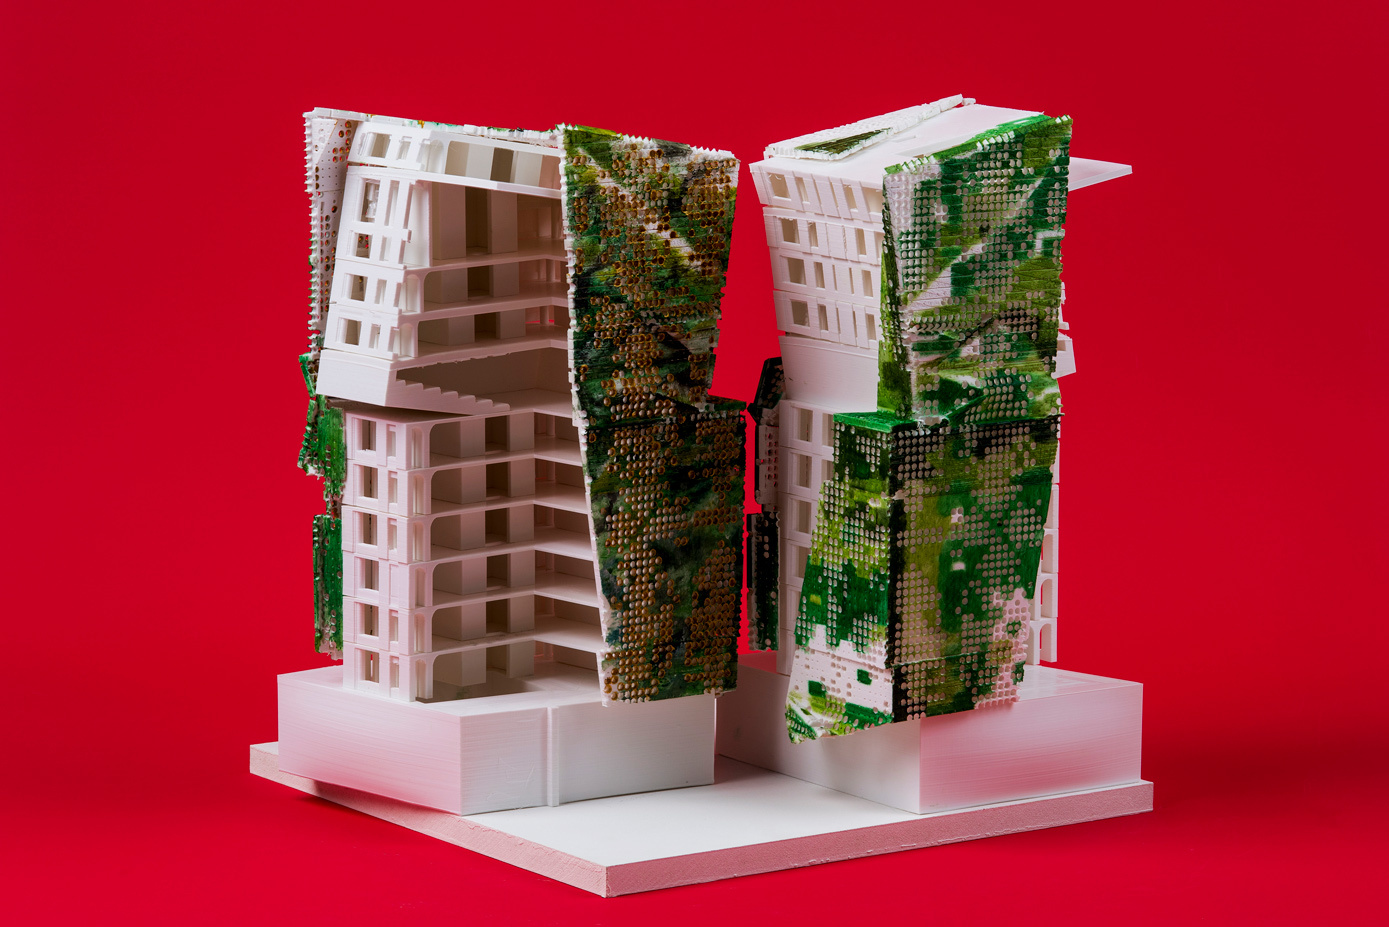 architecture model white with green side red background